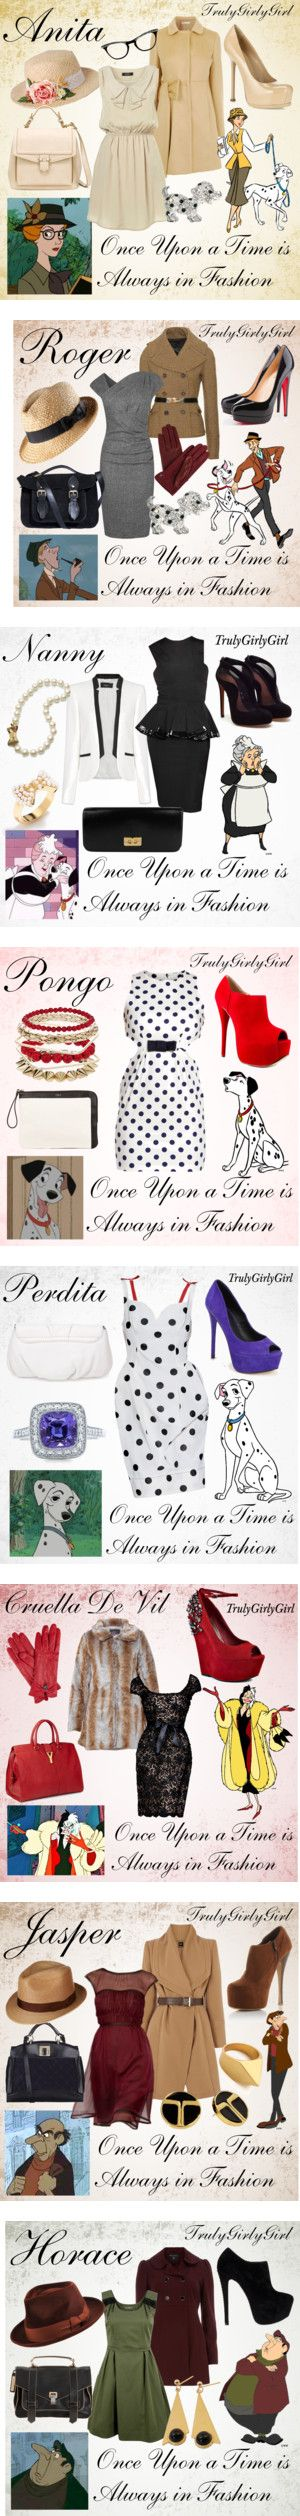 """""""Disney Style: 101 Dalmations Collection"""" by trulygirlygirl ❤ liked on Polyvore"""